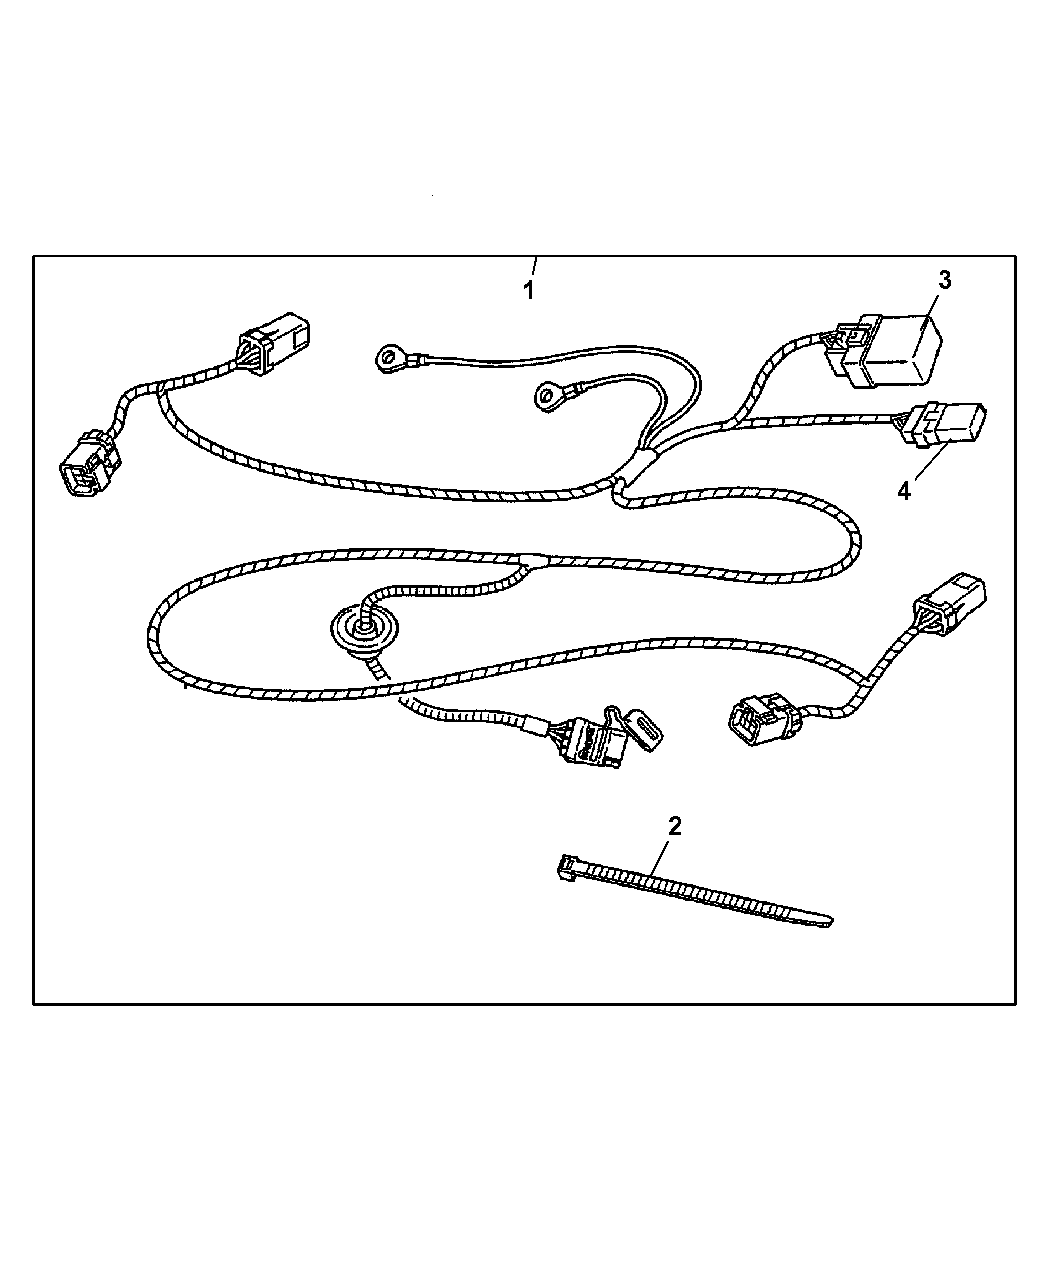 82209472 - Genuine Chrysler Wiring-trailer Tow